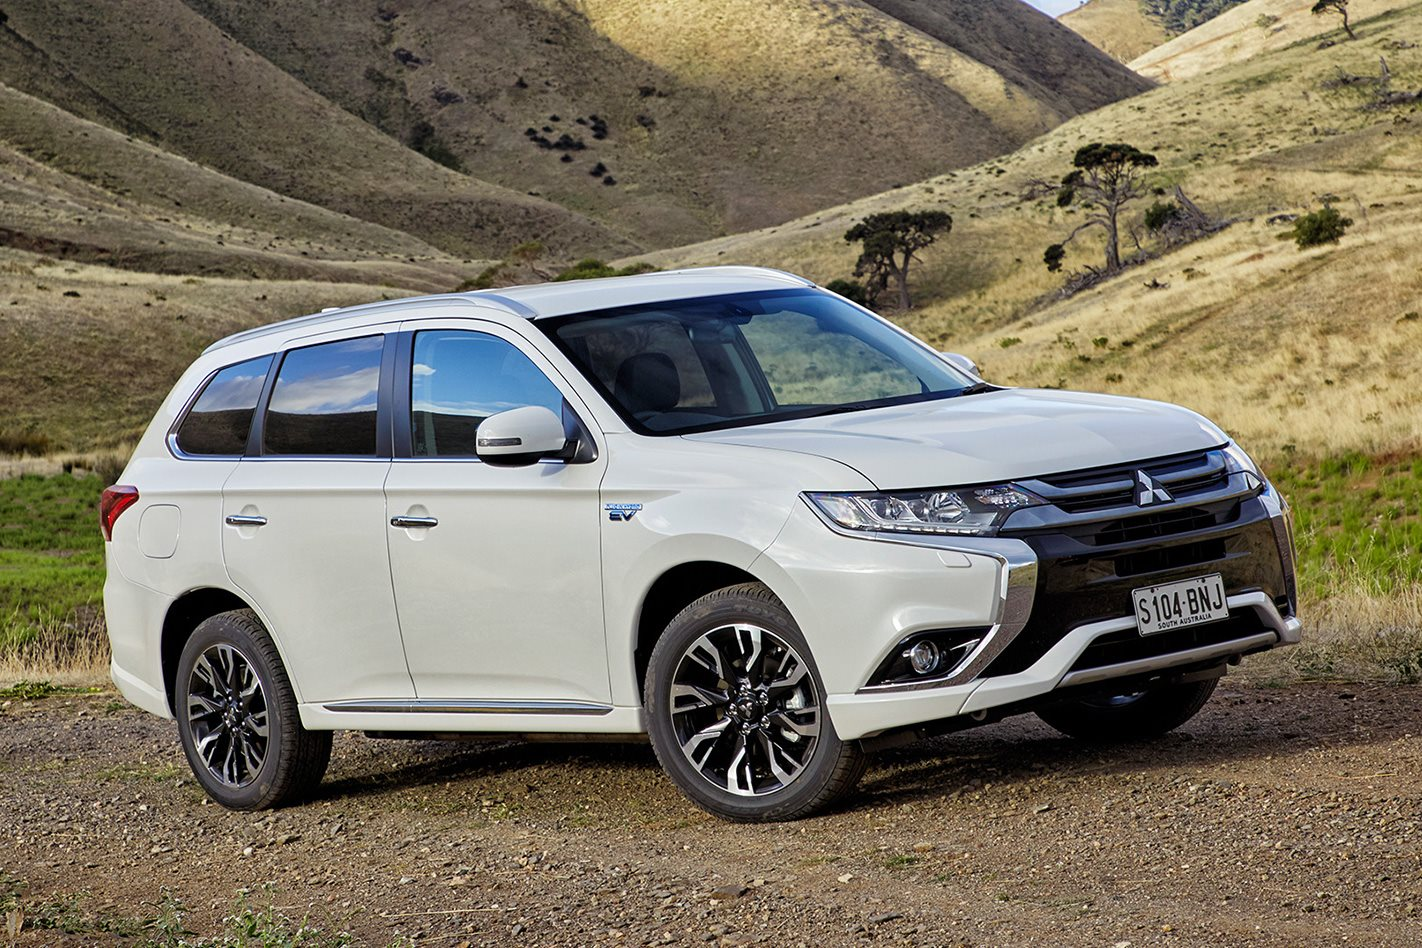 2017 mitsubishi outlander phev review first drive 4x4 australia. Black Bedroom Furniture Sets. Home Design Ideas